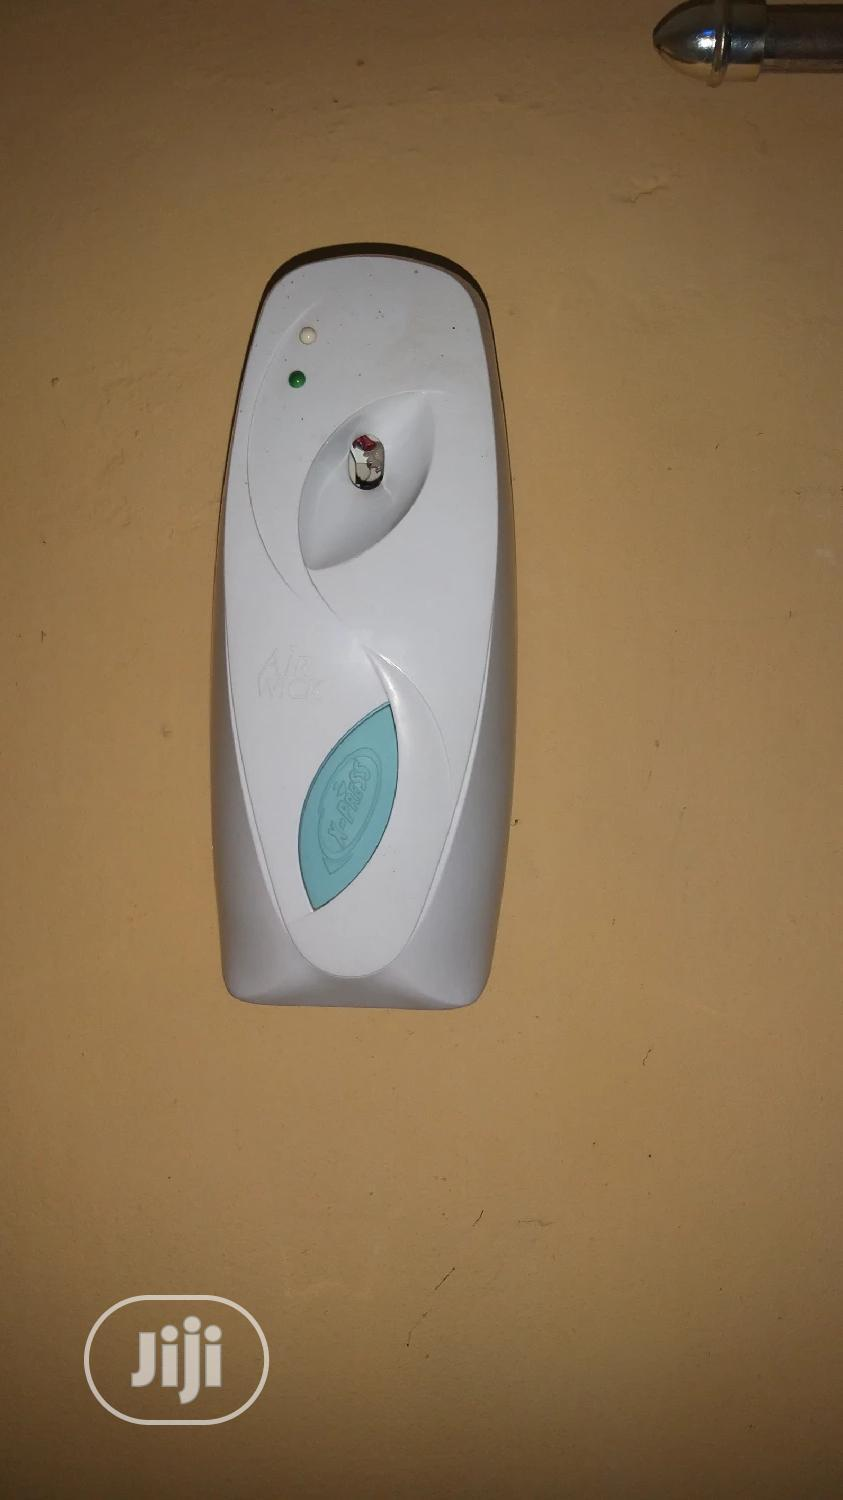 Airwick Freshmatic Automatic Spray | Home Accessories for sale in Ajah, Lagos State, Nigeria